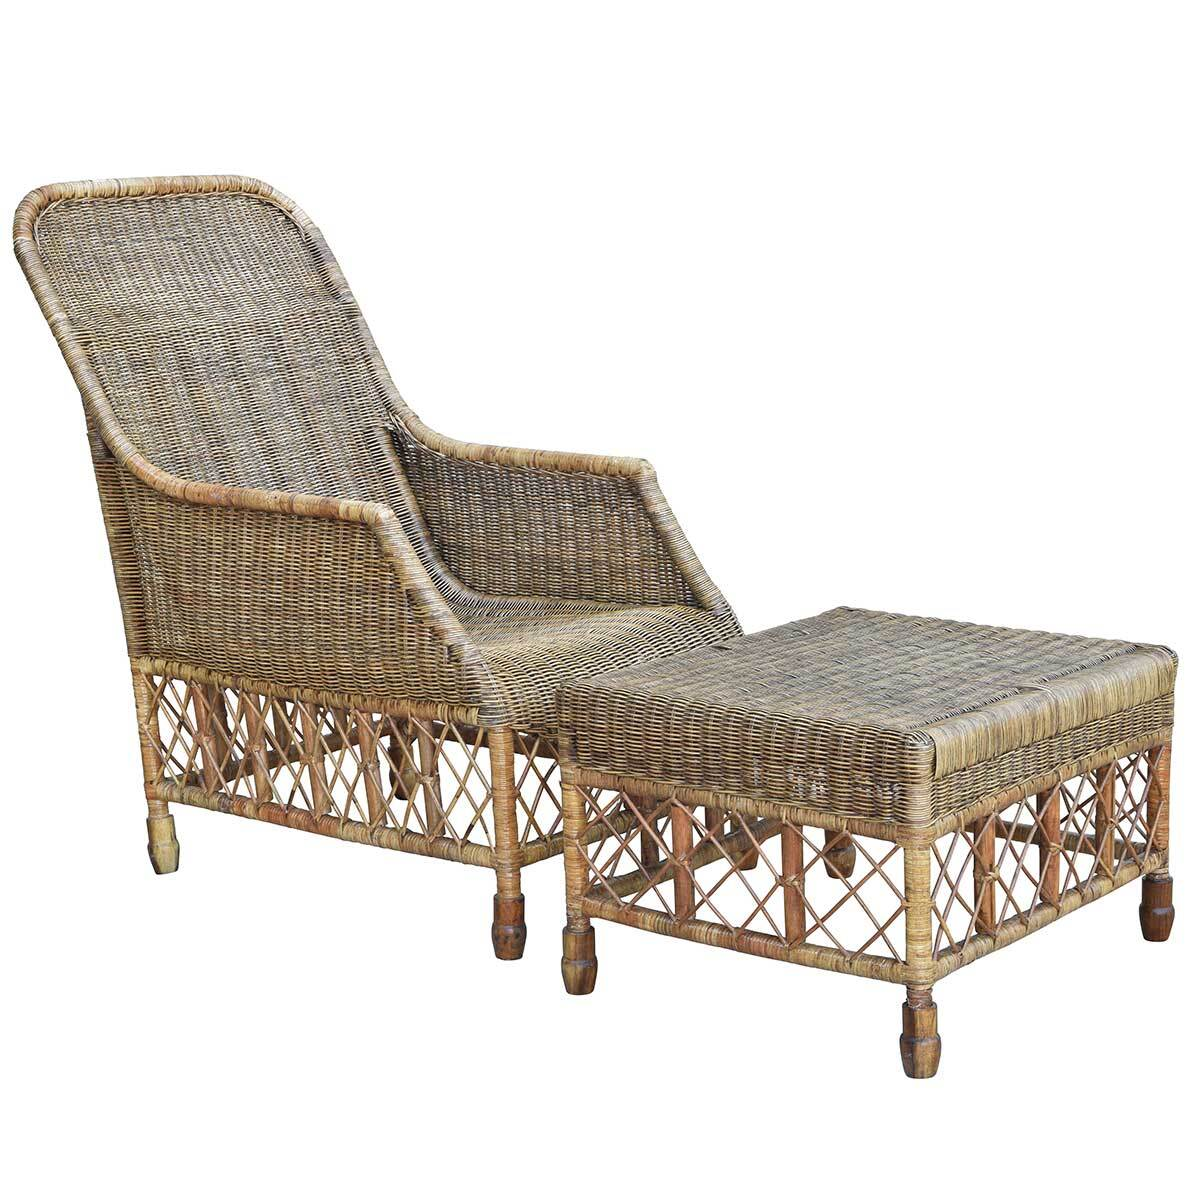 Plantation Lattice Ottoman